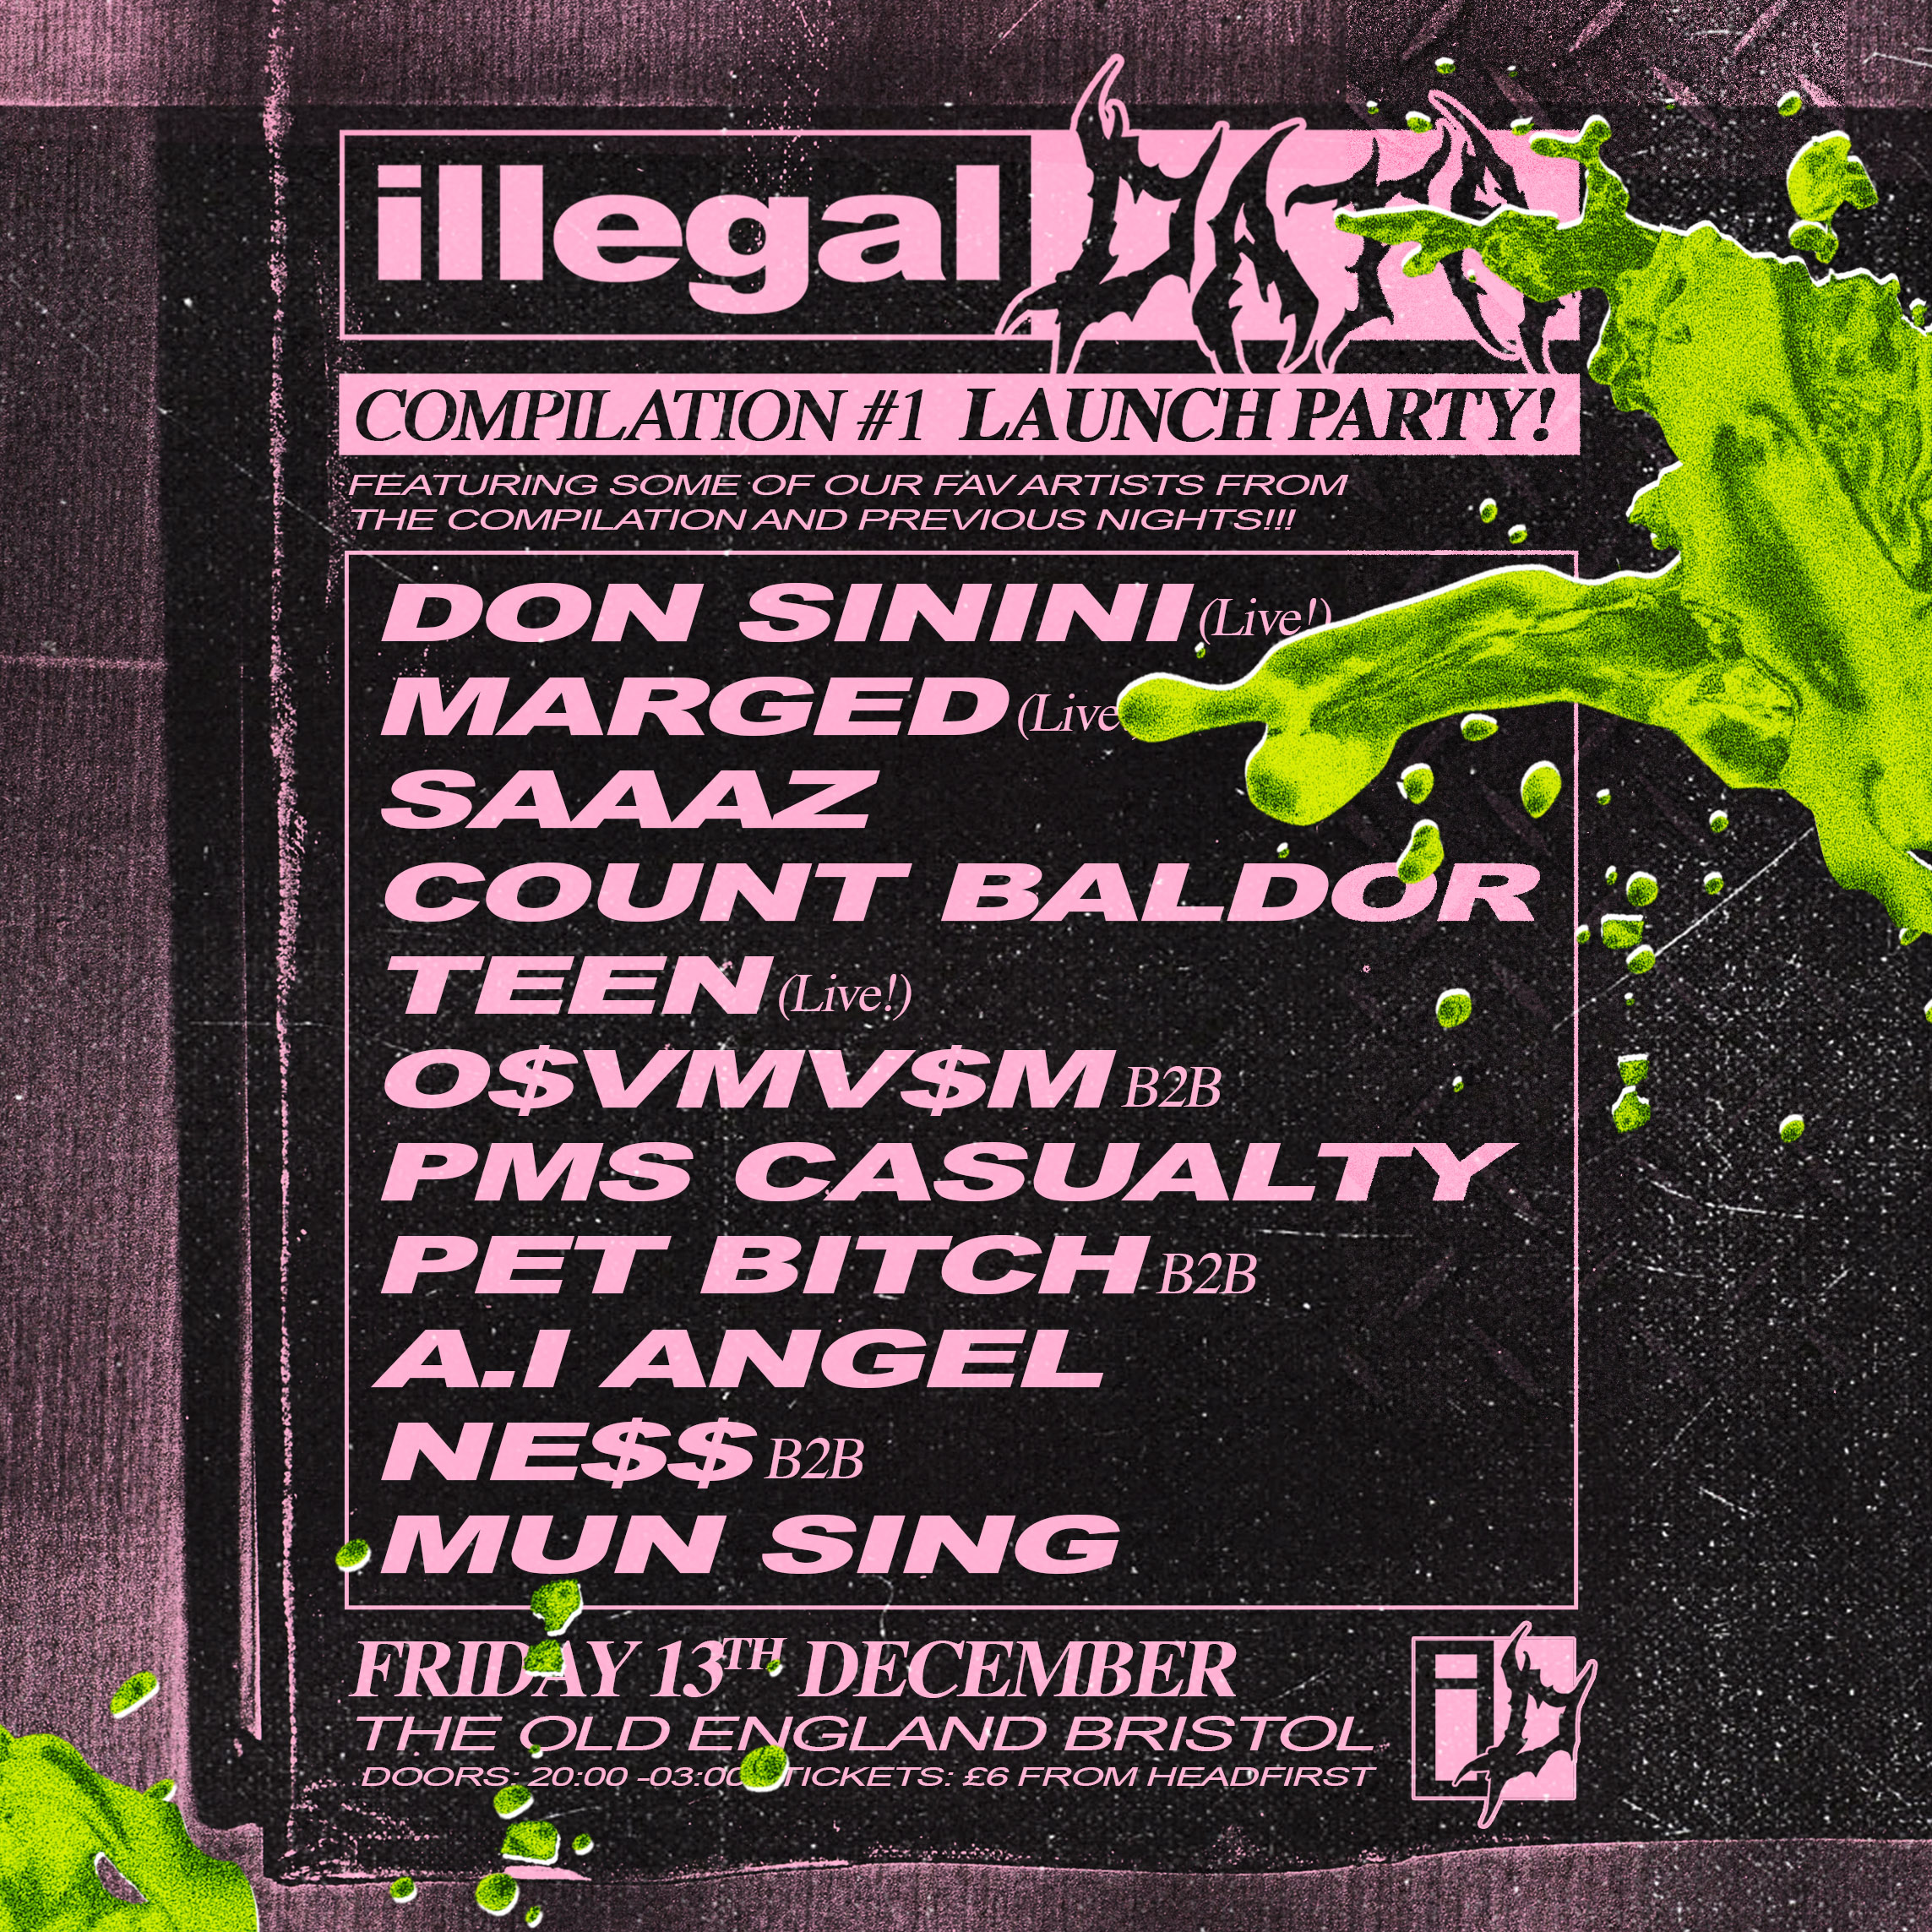 AYA, Don Sinini and L U C Y contribute to Illegal Data compilation